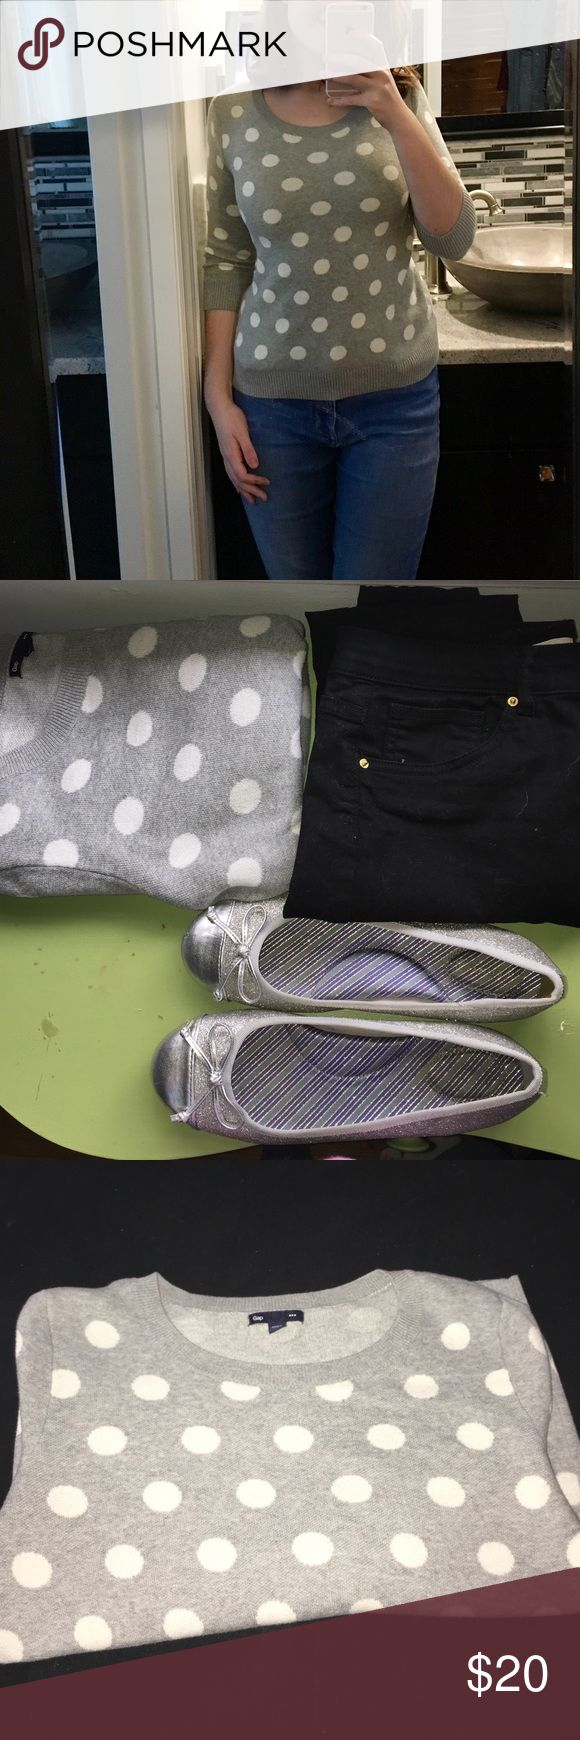 Polka dot sweater This grey sweater with white polka dots and 3/4 sleeves is super cute and casual! It can be dressed up or down and has absolutely no flaws. All items in the second picture go perfectly with this sweater and the shoes are currently for sale and the jeans will be up for sale within the week GAP Tops Sweatshirts & Hoodies